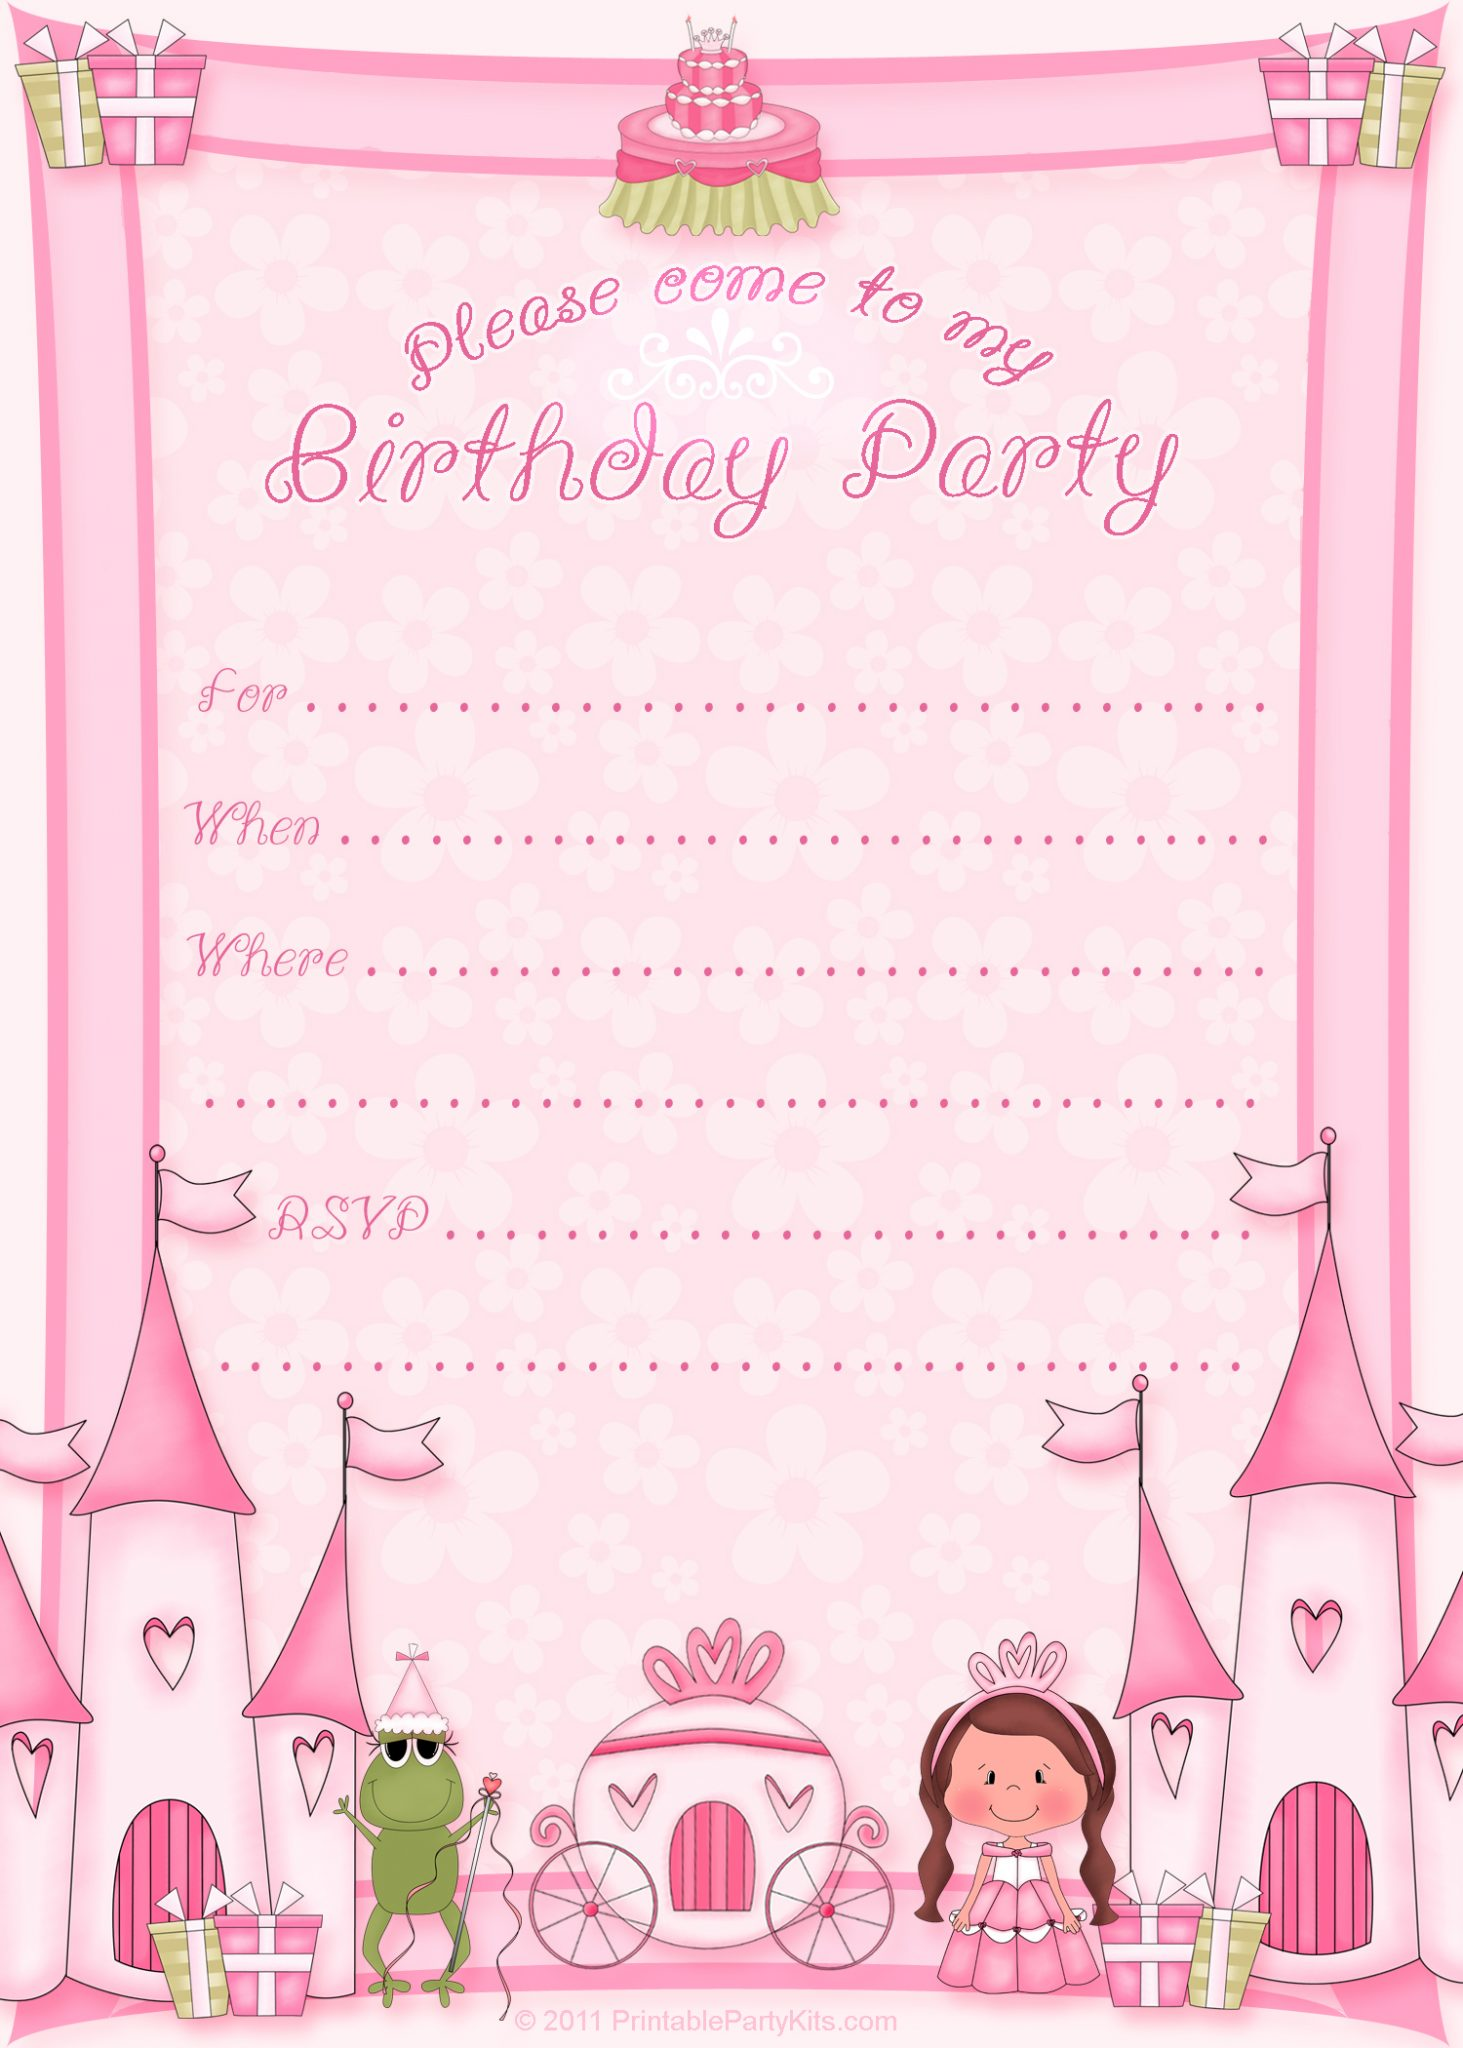 50 Free Birthday Invitation Templates You Will Love These – Invitation Card for Birthday